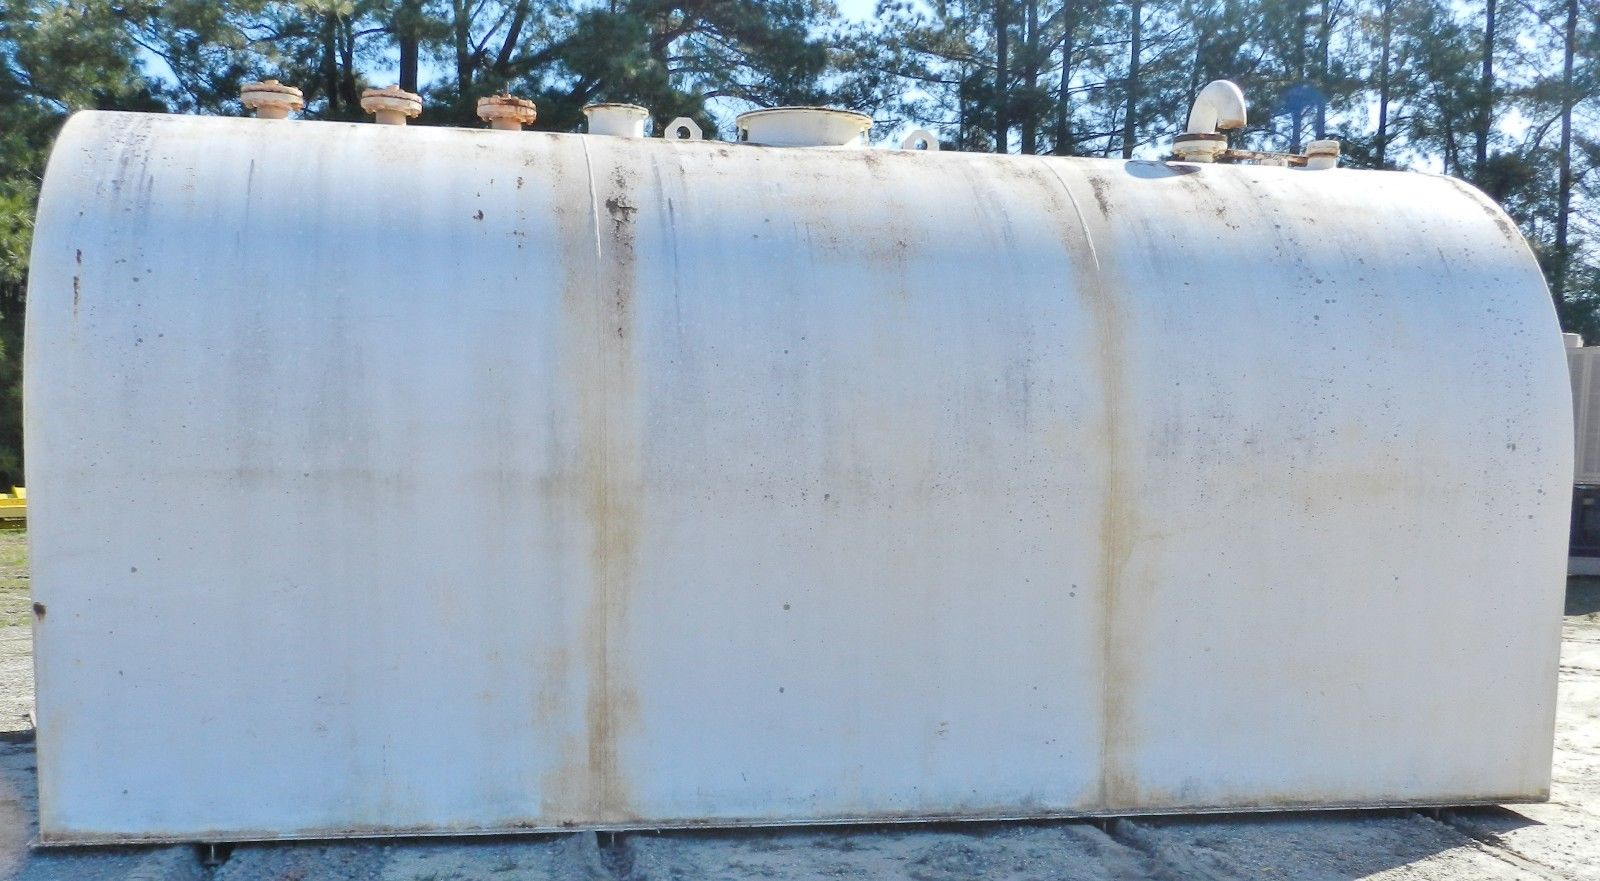 Lot 37 - Bendel 6400 Gallon Fuel Tank